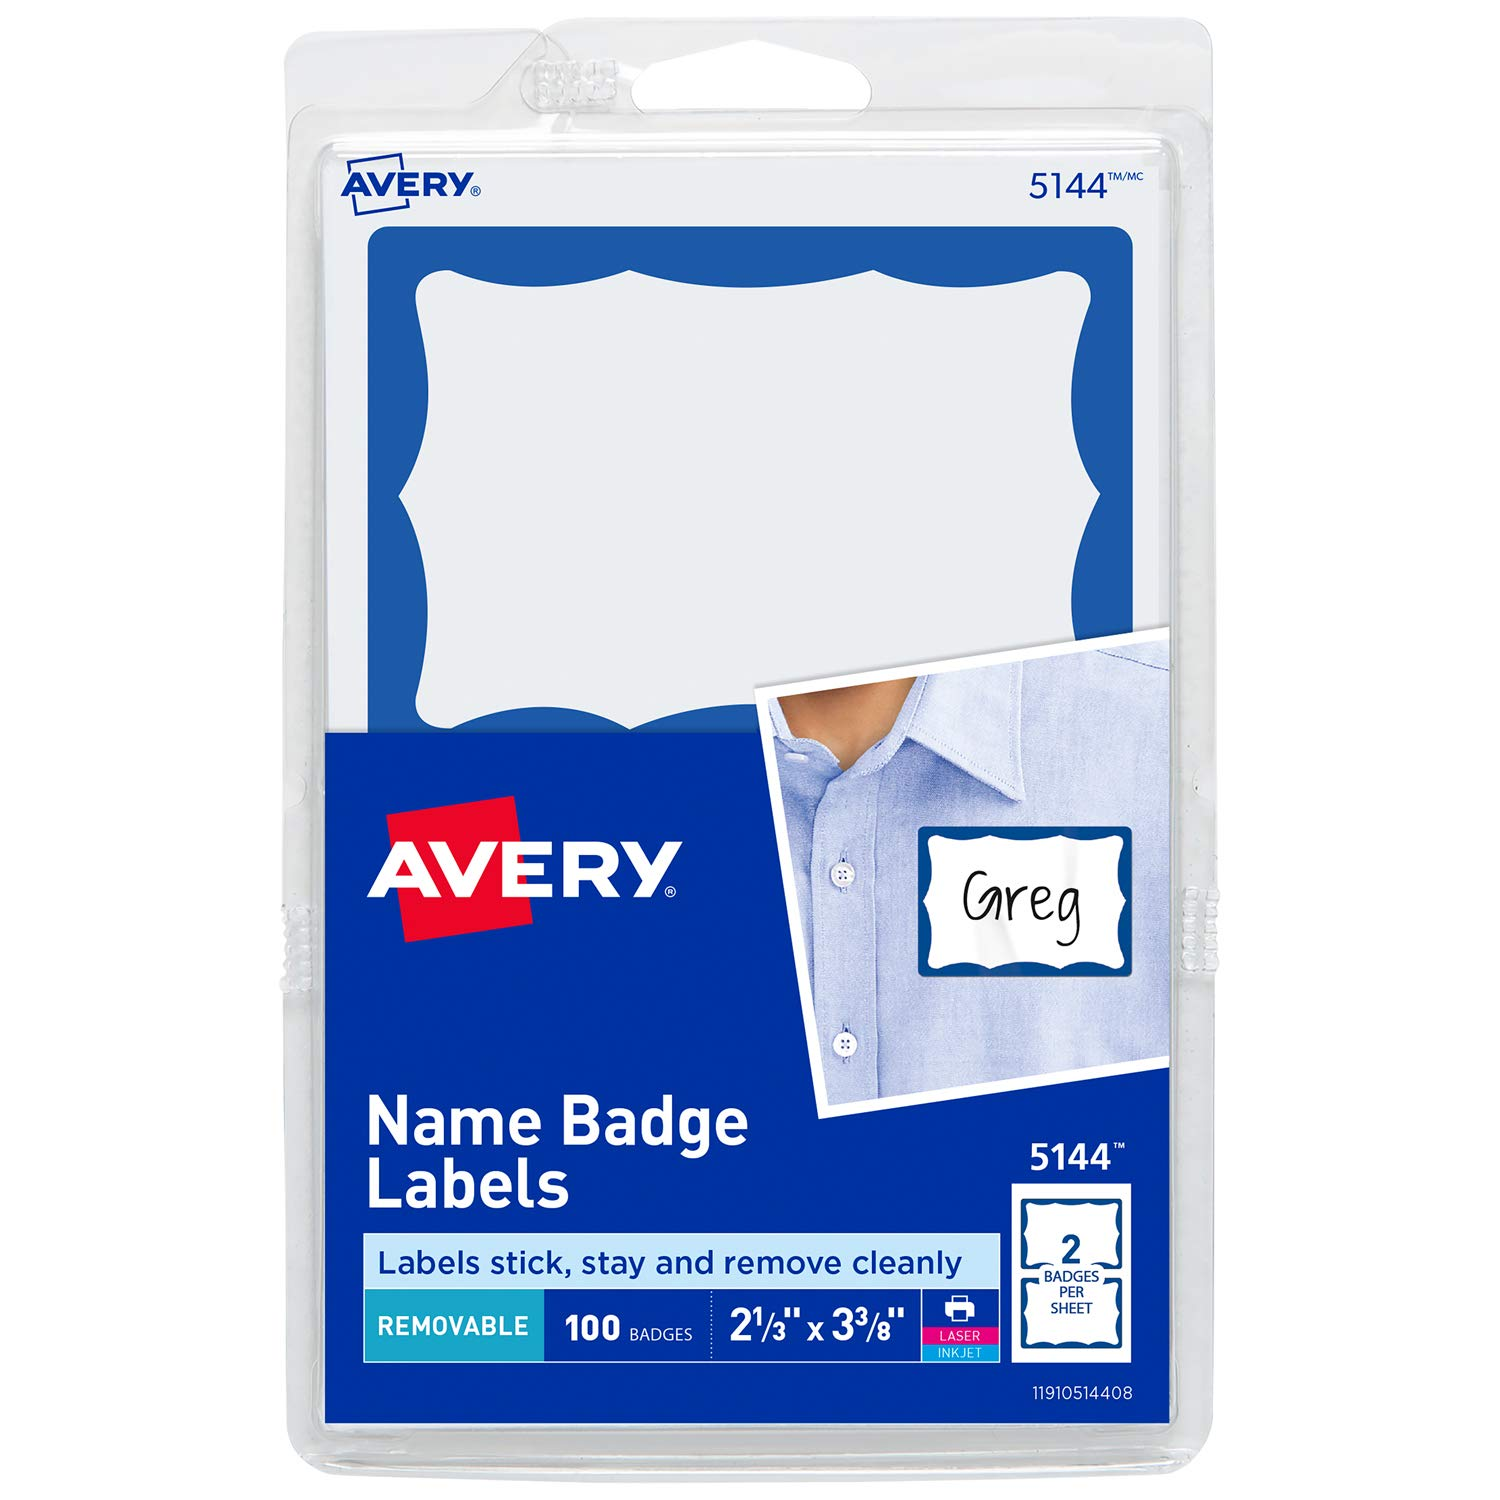 Avery Personalized Name Tags, Print or Write, Blue Border, 2-1/3 x 3-3/8, 600 Adhesive Tags (5144) Pack of 6 2-1/3 x 3-3/8 Avery Products Corporation 44144